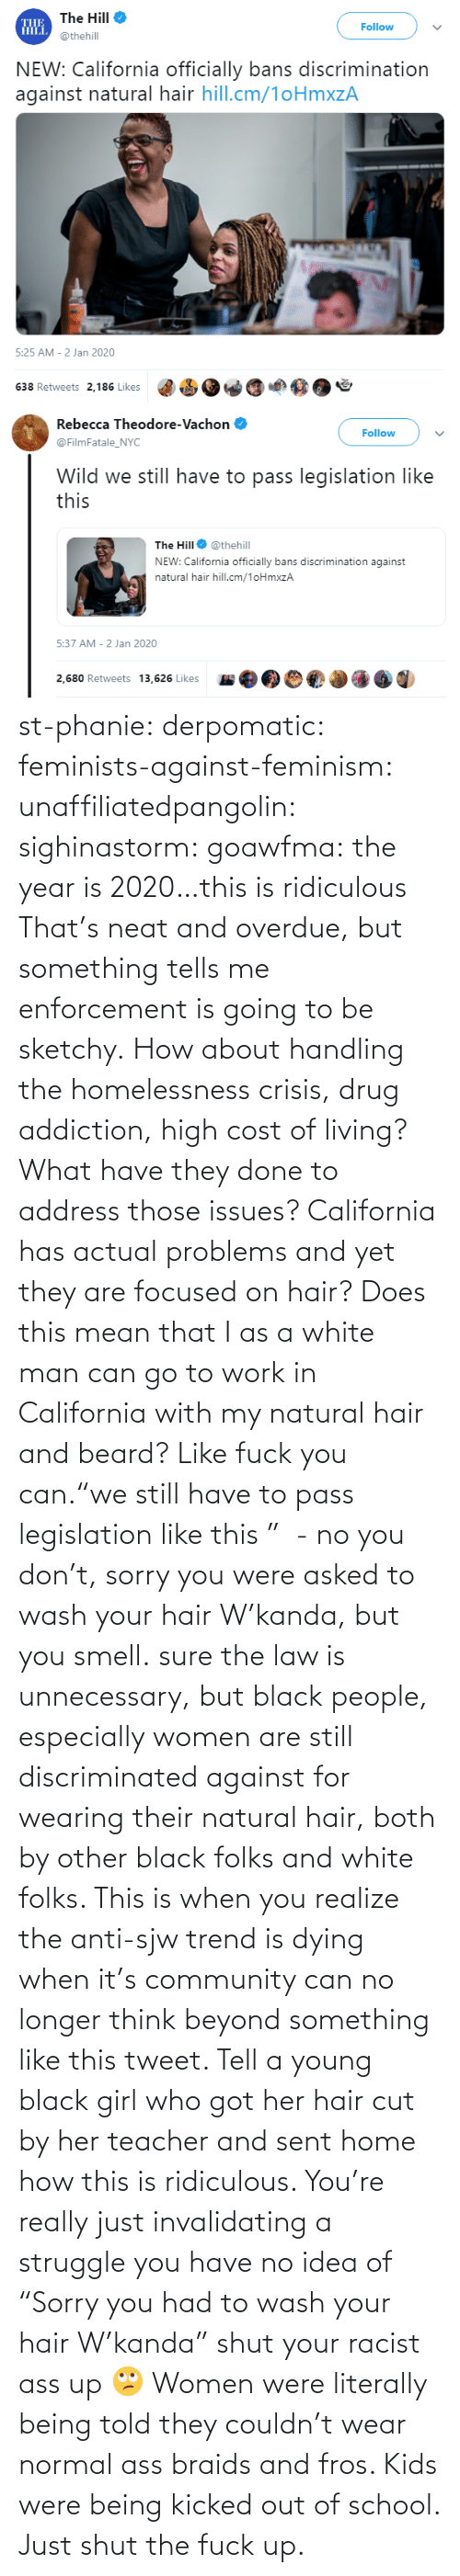 "California: st-phanie:  derpomatic:  feminists-against-feminism:  unaffiliatedpangolin:  sighinastorm:   goawfma: the year is 2020…this is ridiculous That's neat and overdue, but something tells me enforcement is going to be sketchy.    How about handling the homelessness crisis, drug addiction, high cost of living? What have they done to address those issues? California has actual problems and yet they are focused on hair?  Does this mean that I as a white man can go to work in California with my natural hair and beard?  Like fuck you can.""we still have to pass legislation like this ""  - no you don't, sorry you were asked to wash your hair W'kanda, but you smell.    sure the law is unnecessary, but black people, especially women are still discriminated against for wearing their natural hair, both by other black folks and white folks. This is when you realize the anti-sjw trend is dying when it's community can no longer think beyond something like this tweet. Tell a young black girl who got her hair cut by her teacher and sent home how this is ridiculous. You're really just invalidating a struggle you have no idea of   ""Sorry you had to wash your hair W'kanda"" shut your racist ass up 🙄 Women were literally being told they couldn't wear normal ass braids and fros. Kids were being kicked out of school. Just shut the fuck up."